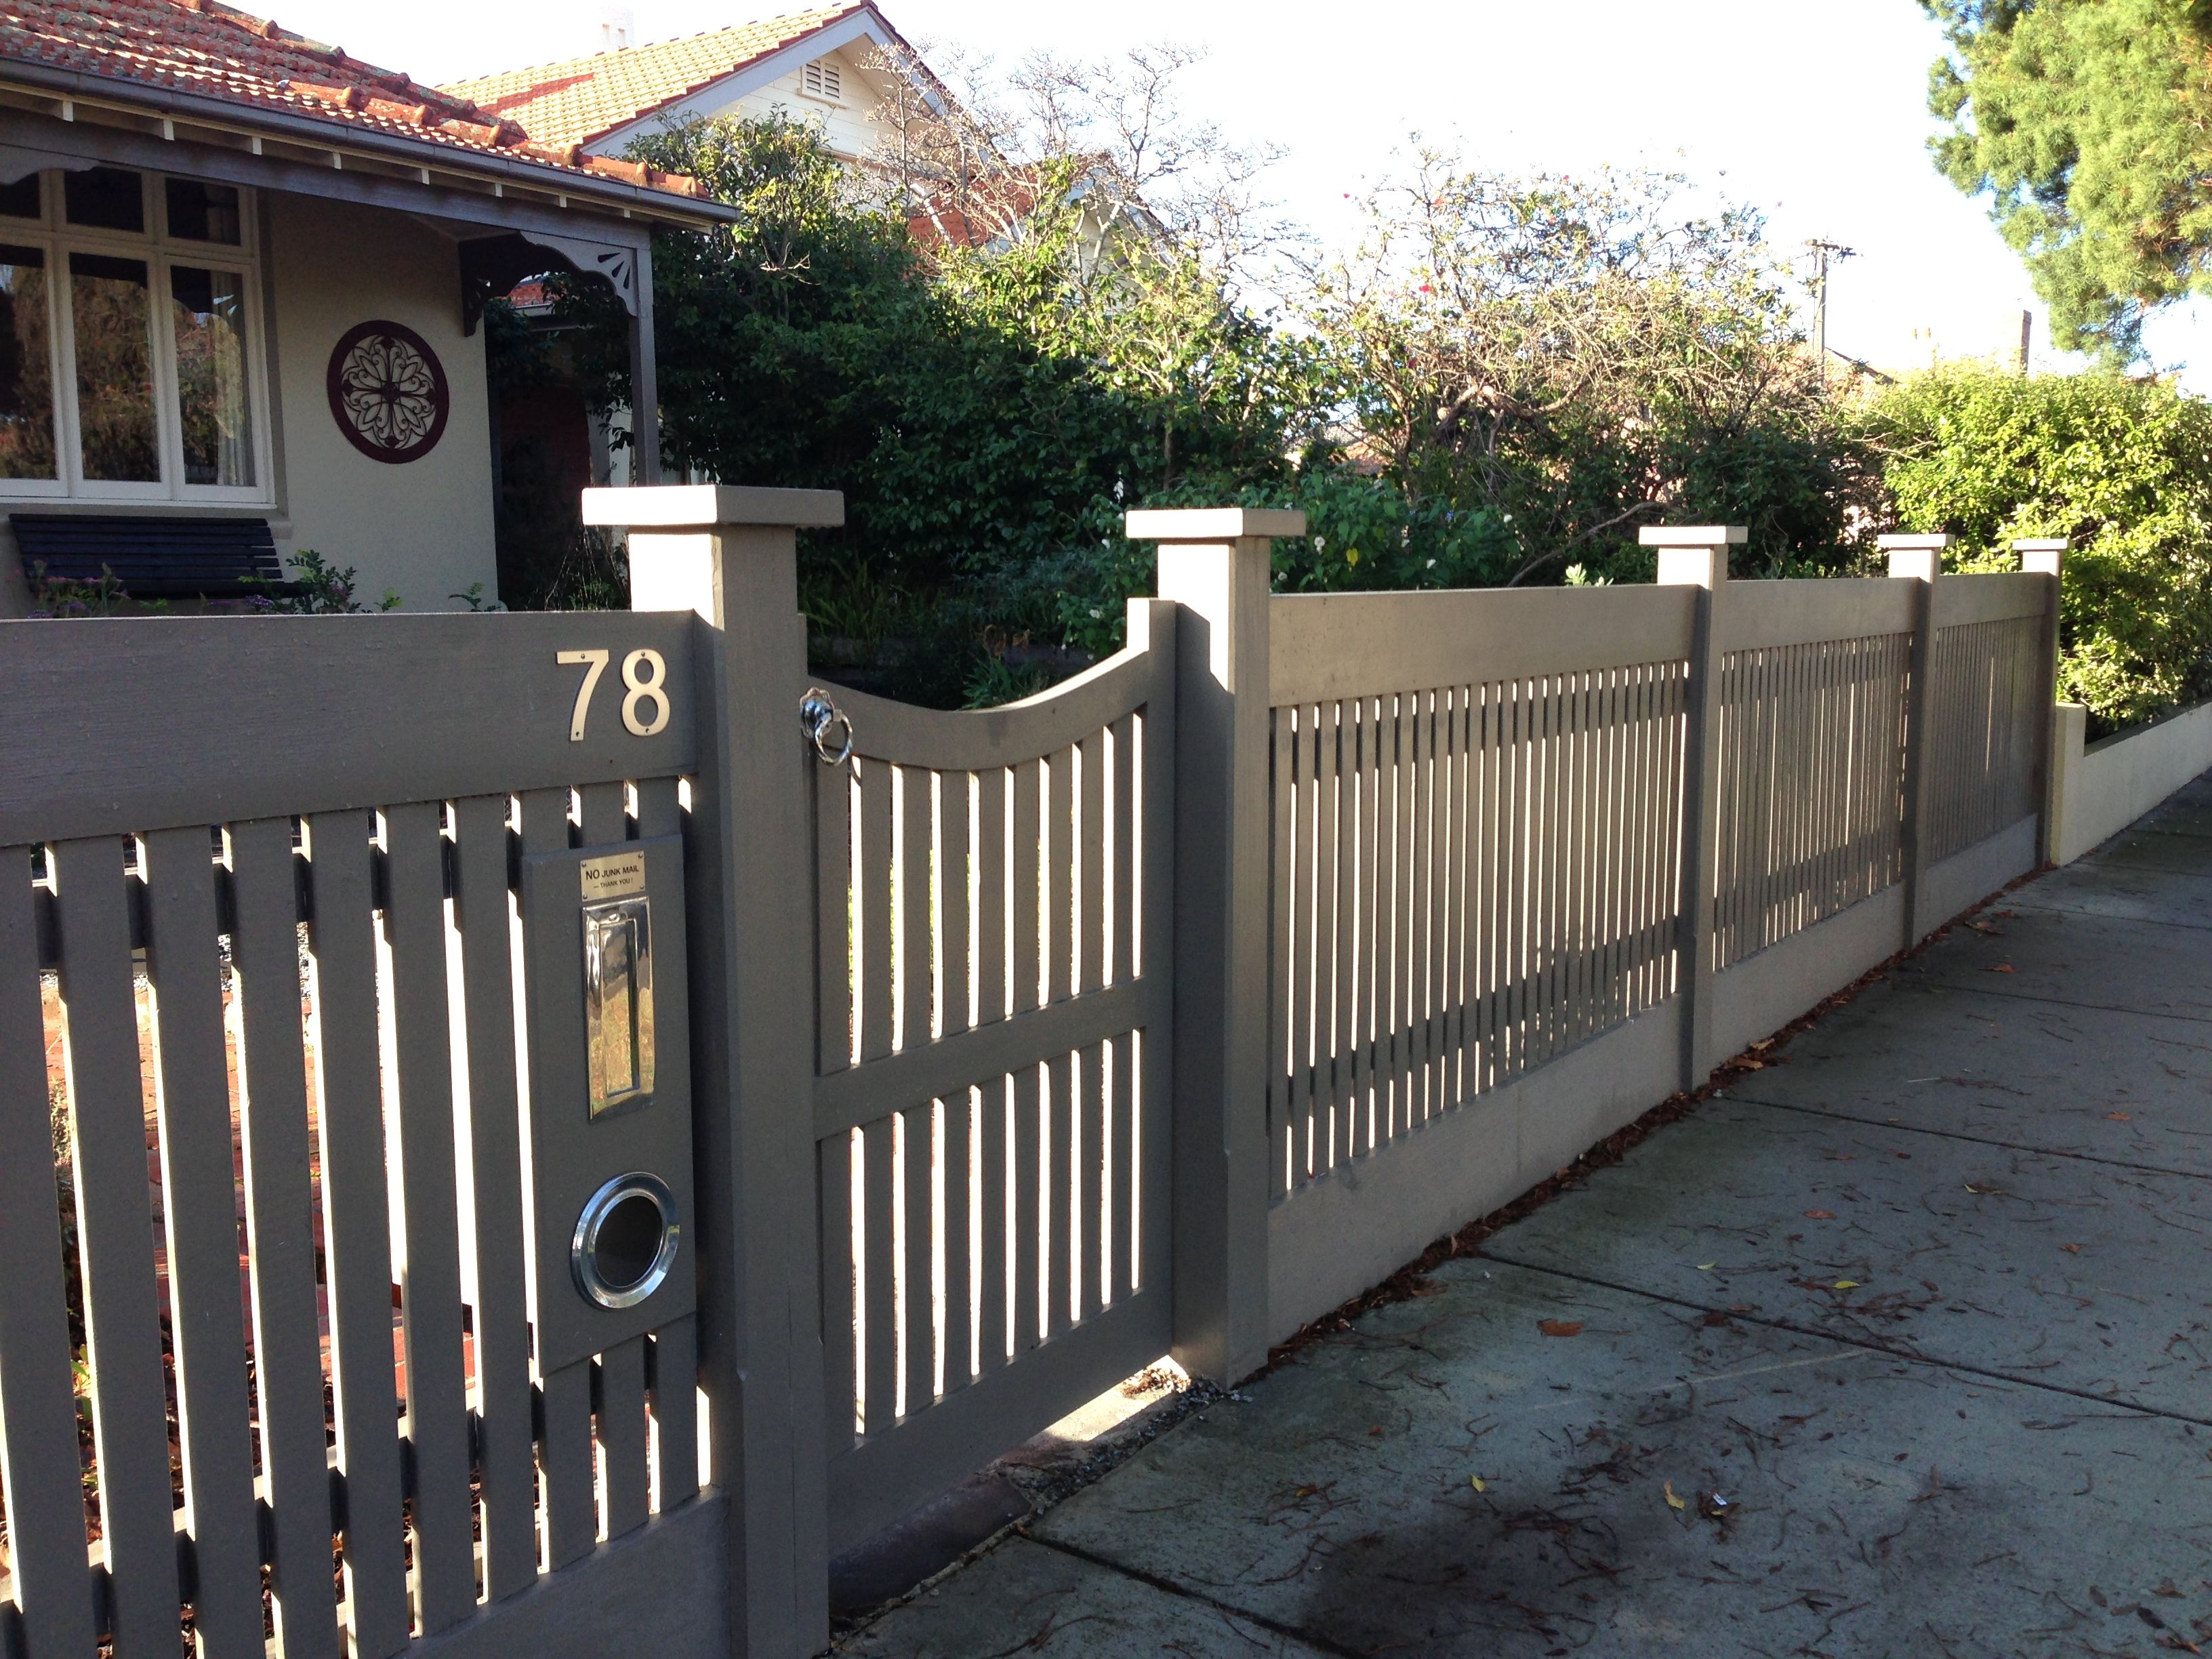 Heavy Colonial Or Heritage Style Fence With A Bulky And Sturdy Construction Front Yard Fence Ideas Curb Appeal Front Yard Fence Wood Fence Design